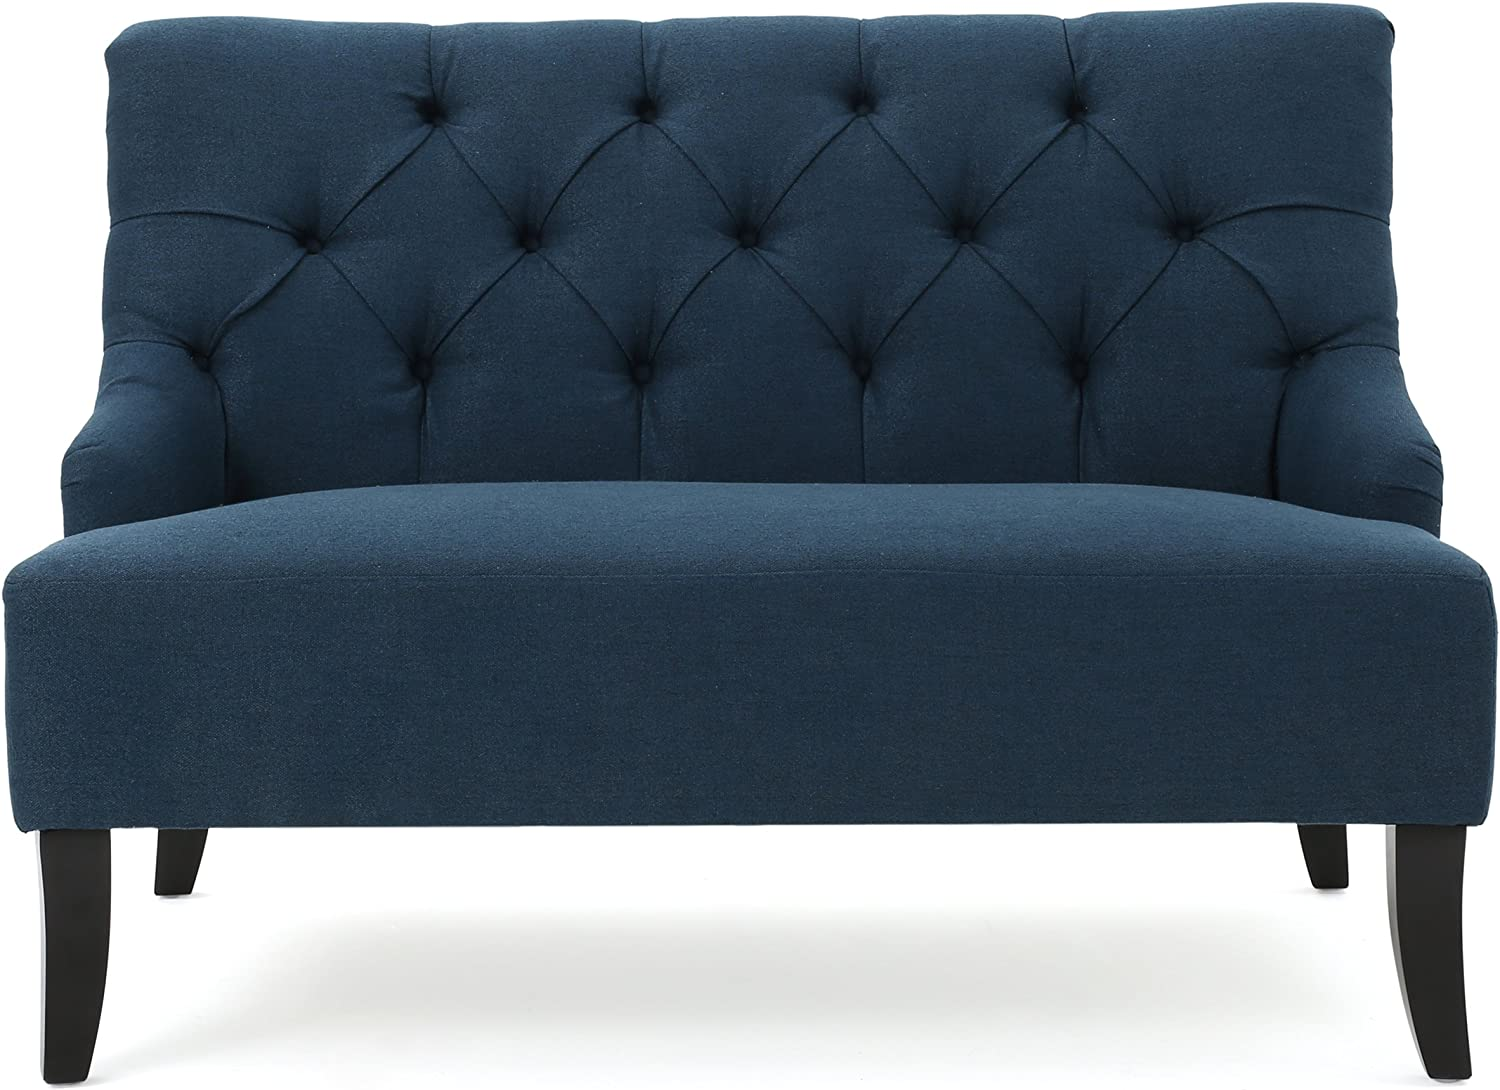 Most Comfortable loveseat: Christopher Knight Christopher Knight